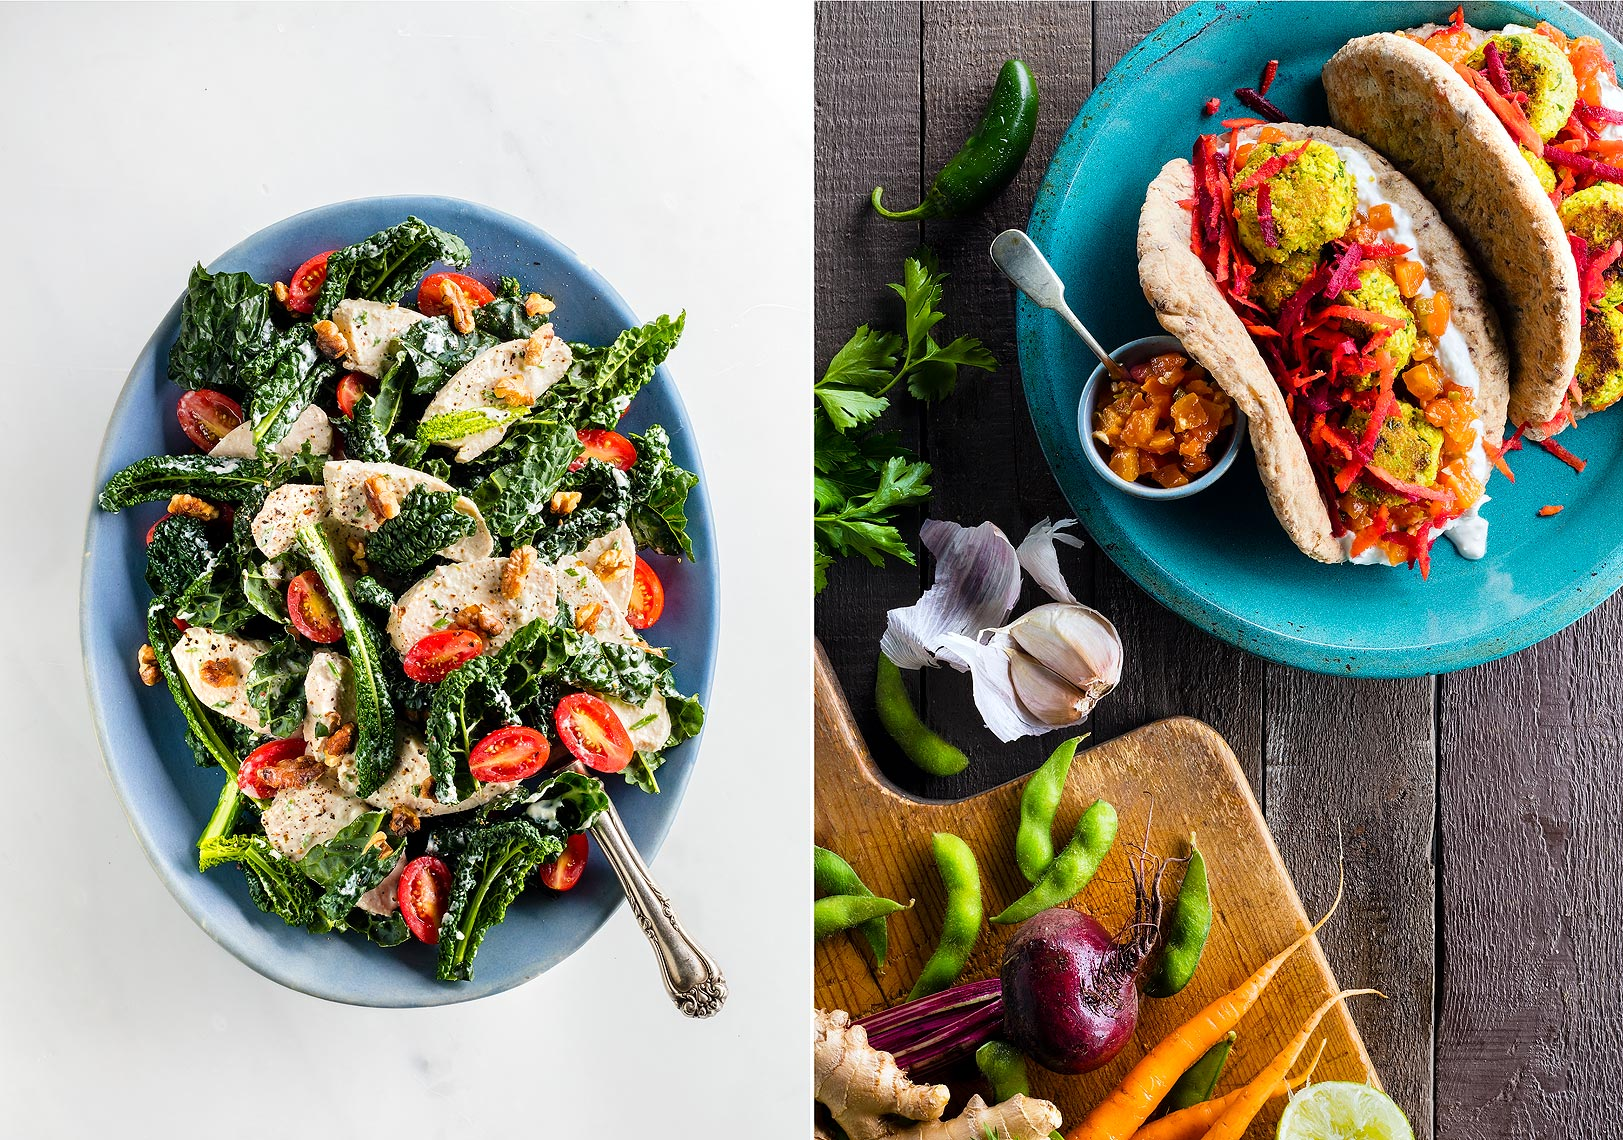 Kale__Chicken_Salad_and_Falafel_with_Papaya_Chutney